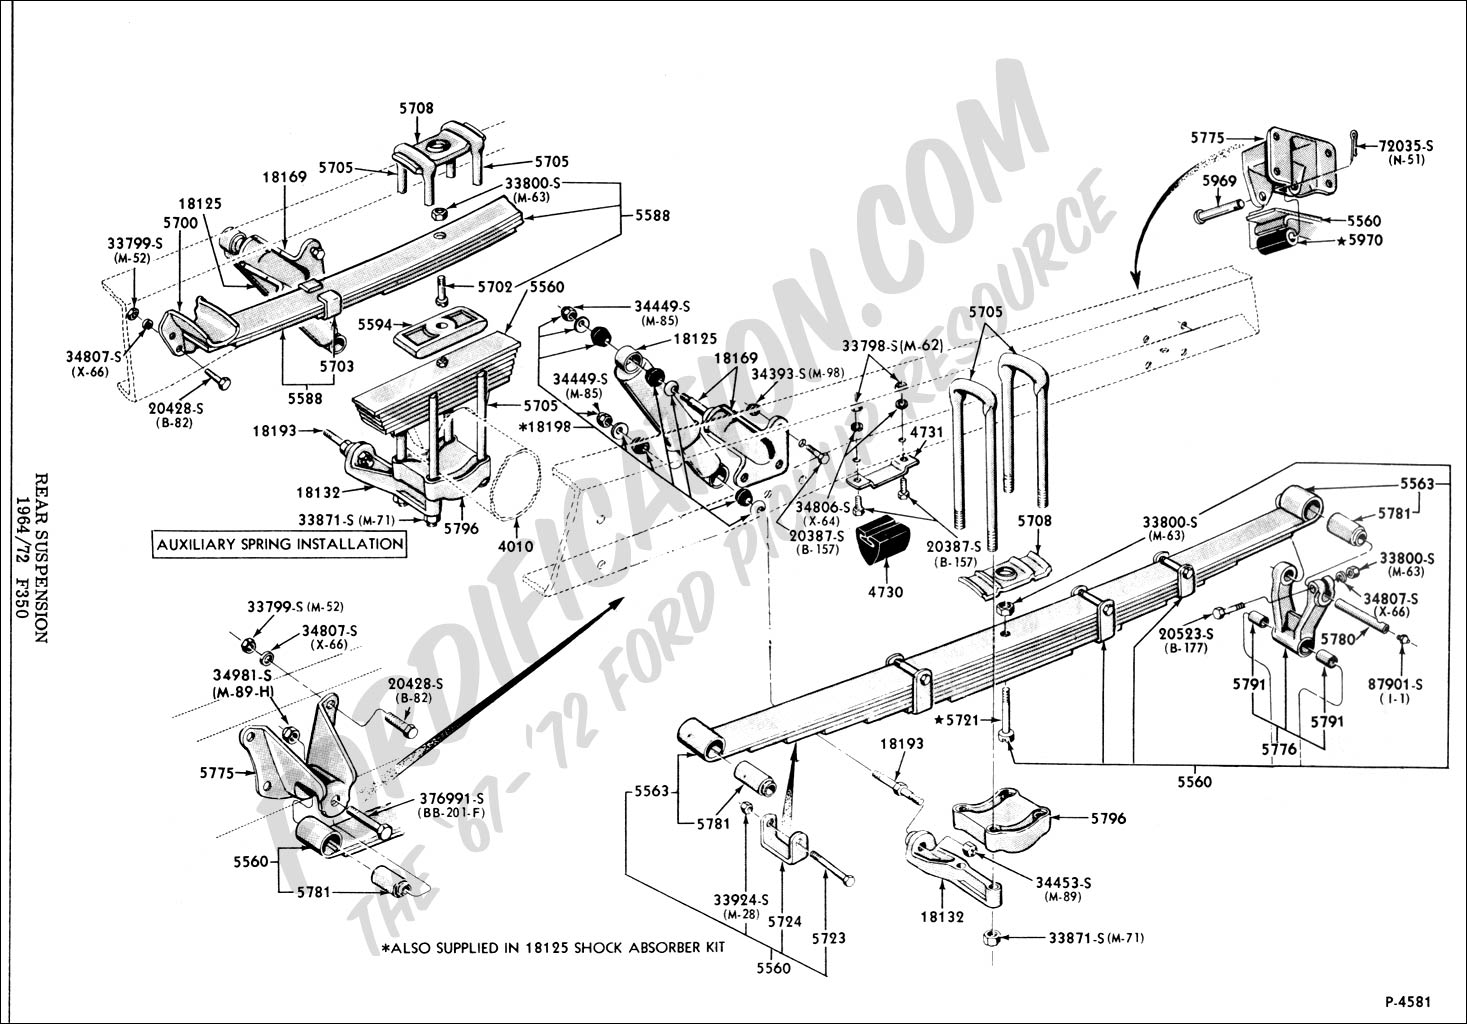 2001 Ford F350 Parts Diagram, 2001, Free Engine Image For